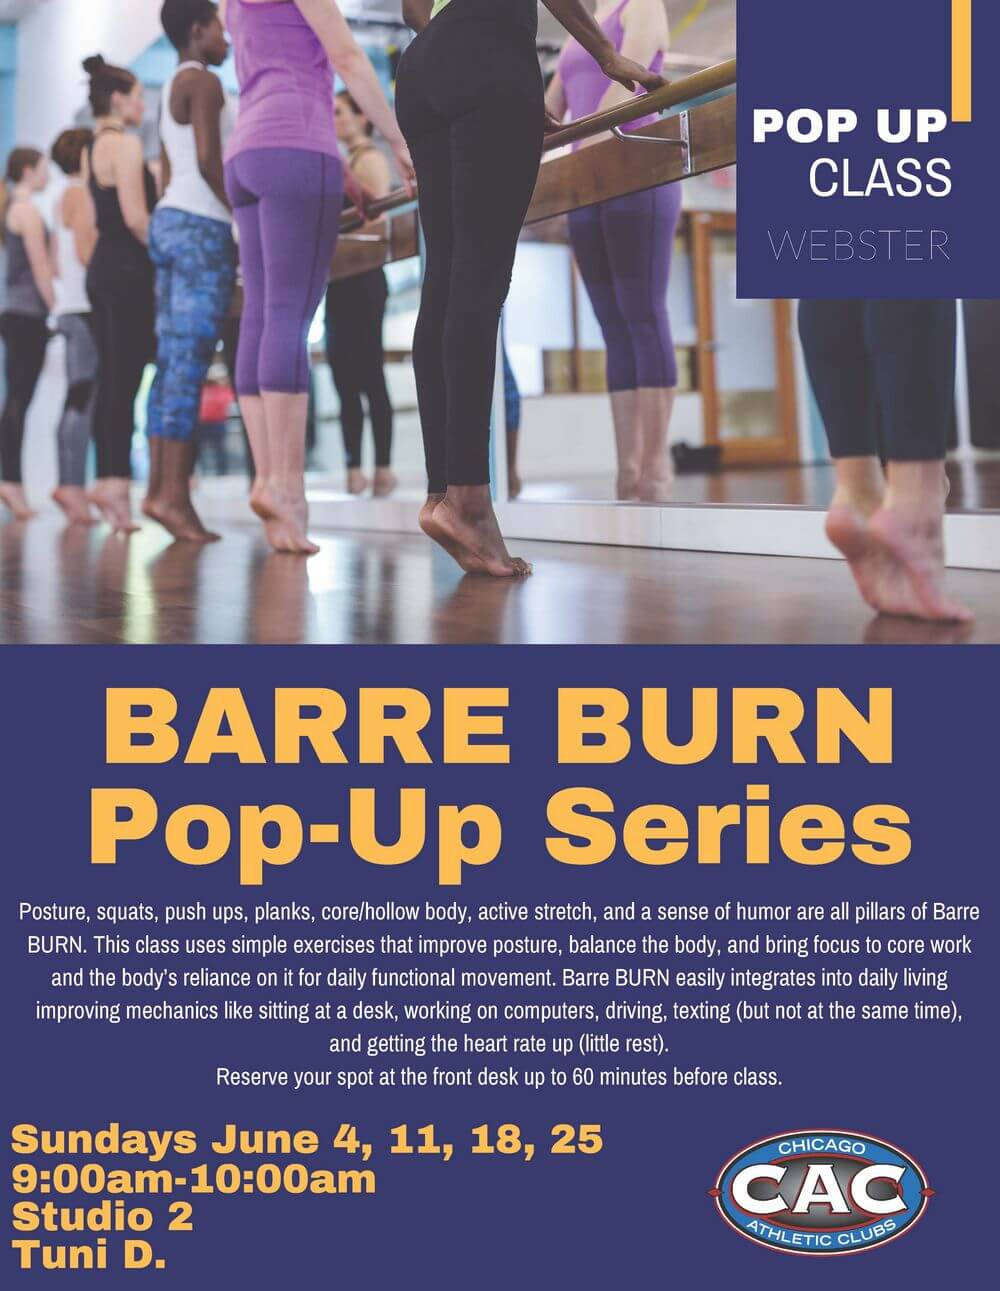 POP UP BARRE BURN WEBSTER.jpg